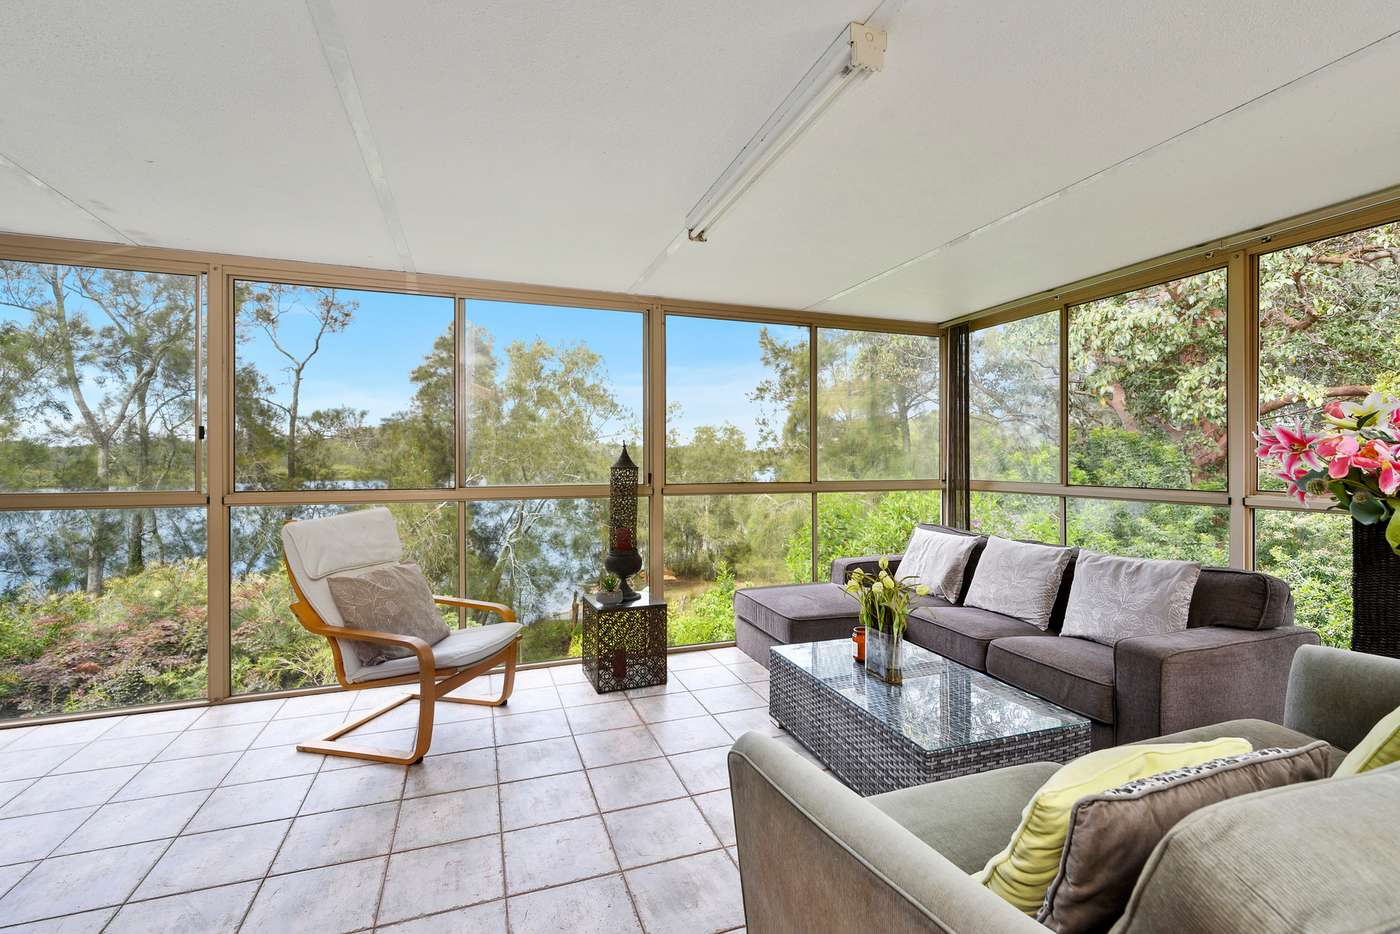 Main view of Homely house listing, 23 Cunningham Crescent, Sawtell NSW 2452